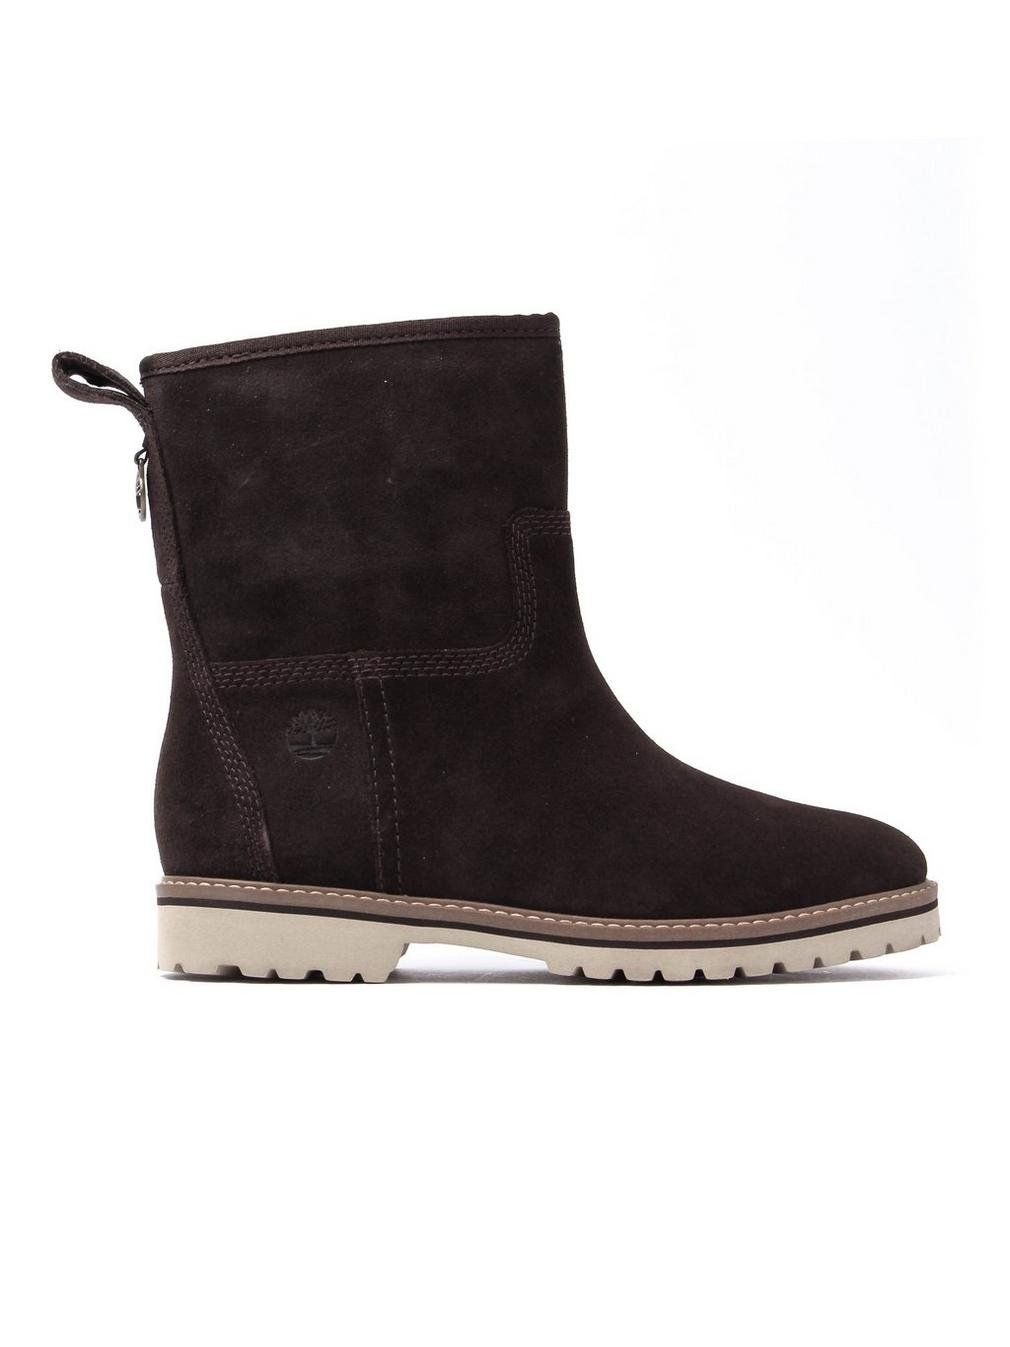 Timberland Chamonix Valley Winter Boot Dark Brown Suede Leather Womens Boots  7 US     Sincerely hope you actually do love the image. 0f30cee6c4